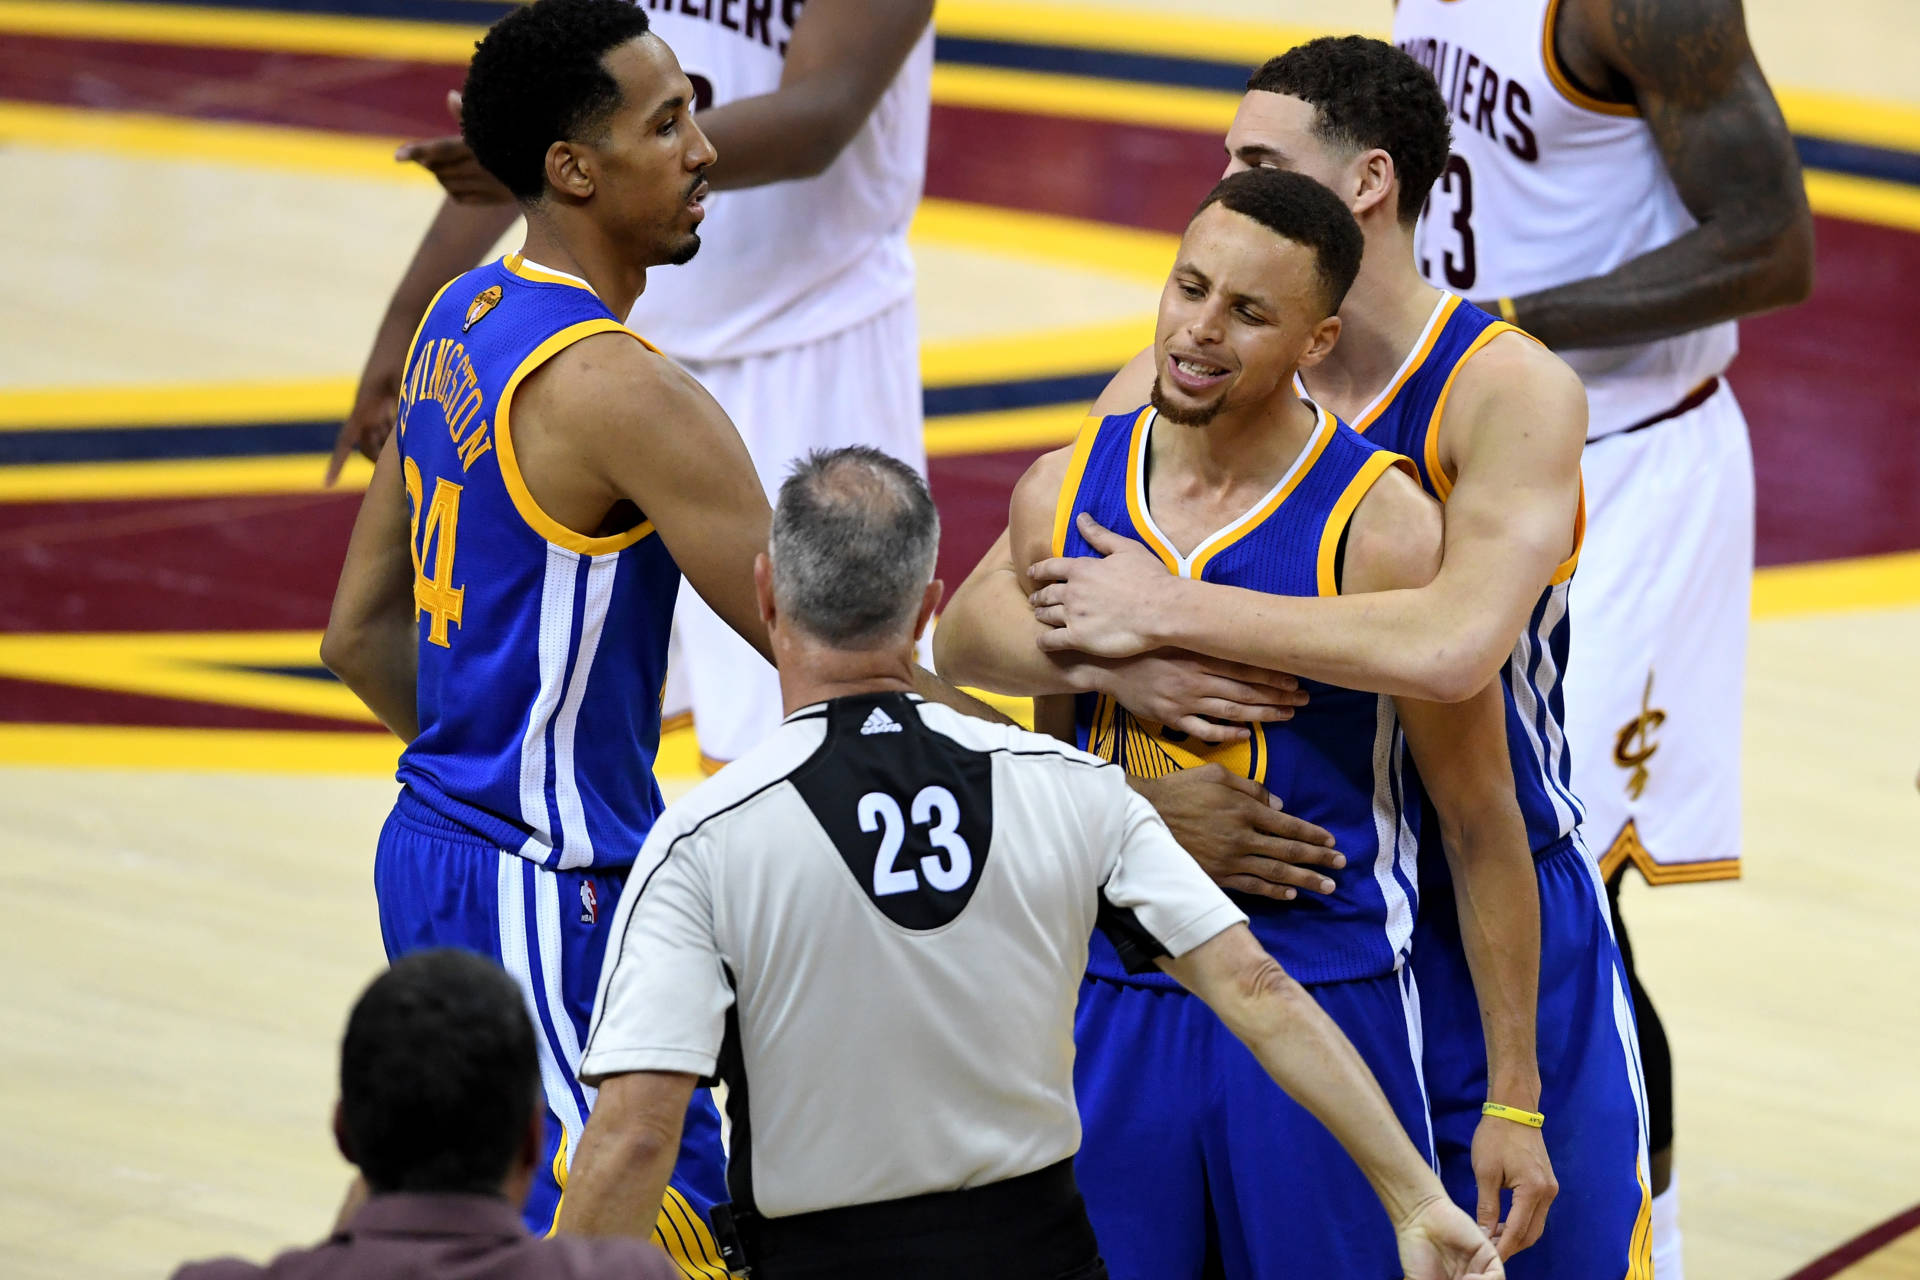 Cavaliers vs warriors game 7 predictions - Cavs Dominate Warriors Again Setting Up Game 7 On Sunday